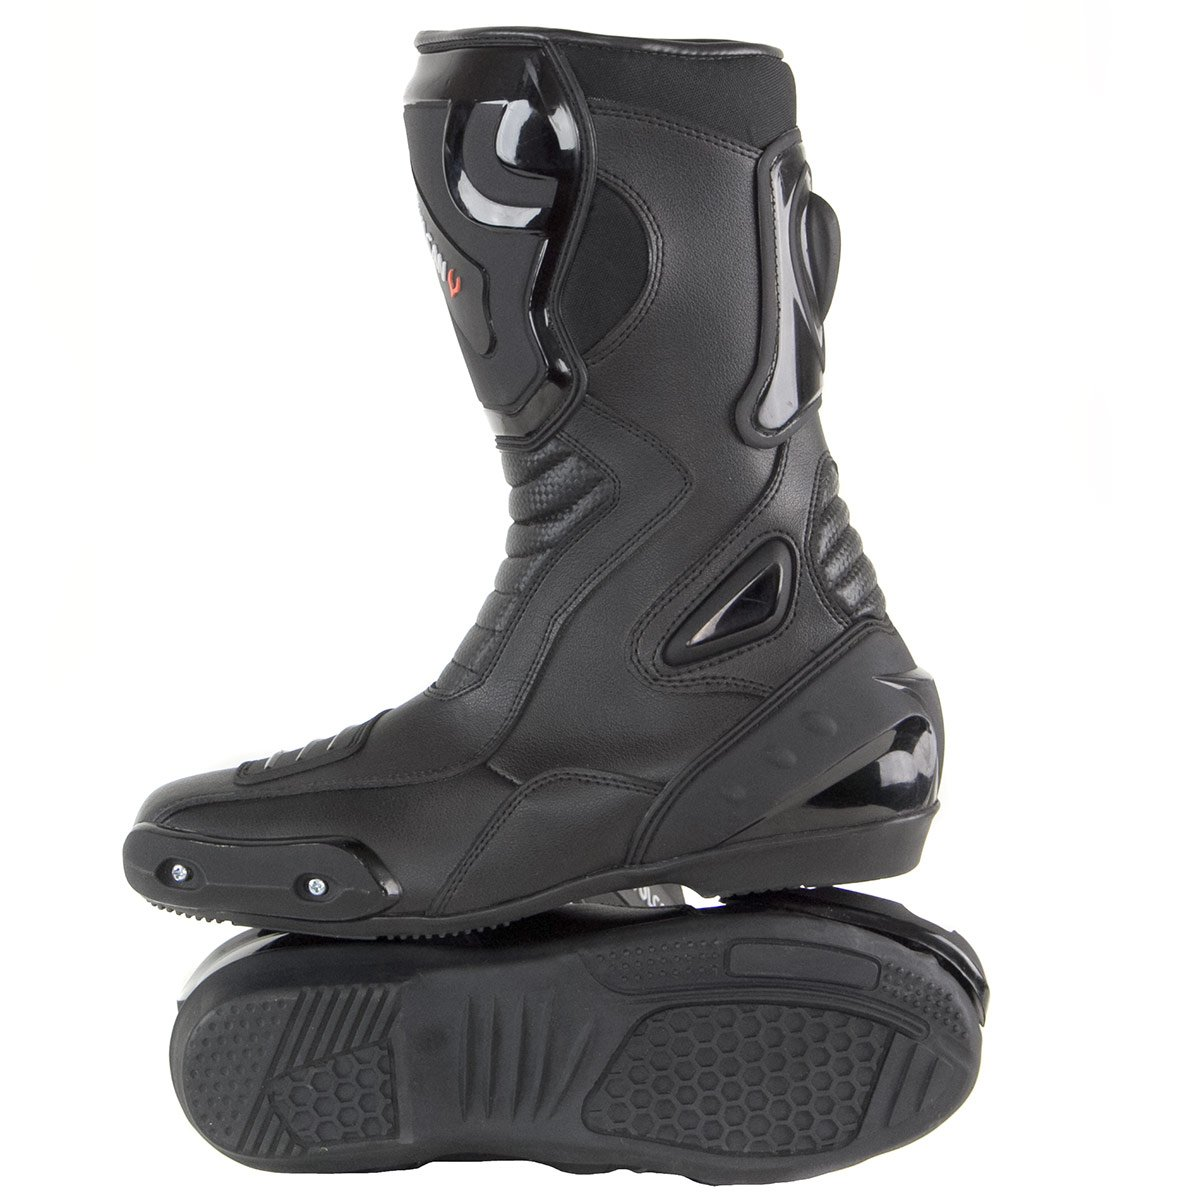 Vulcan V300 Mens Velocity Motorcycle Sport Boots - 11 by Vulcan (Image #5)